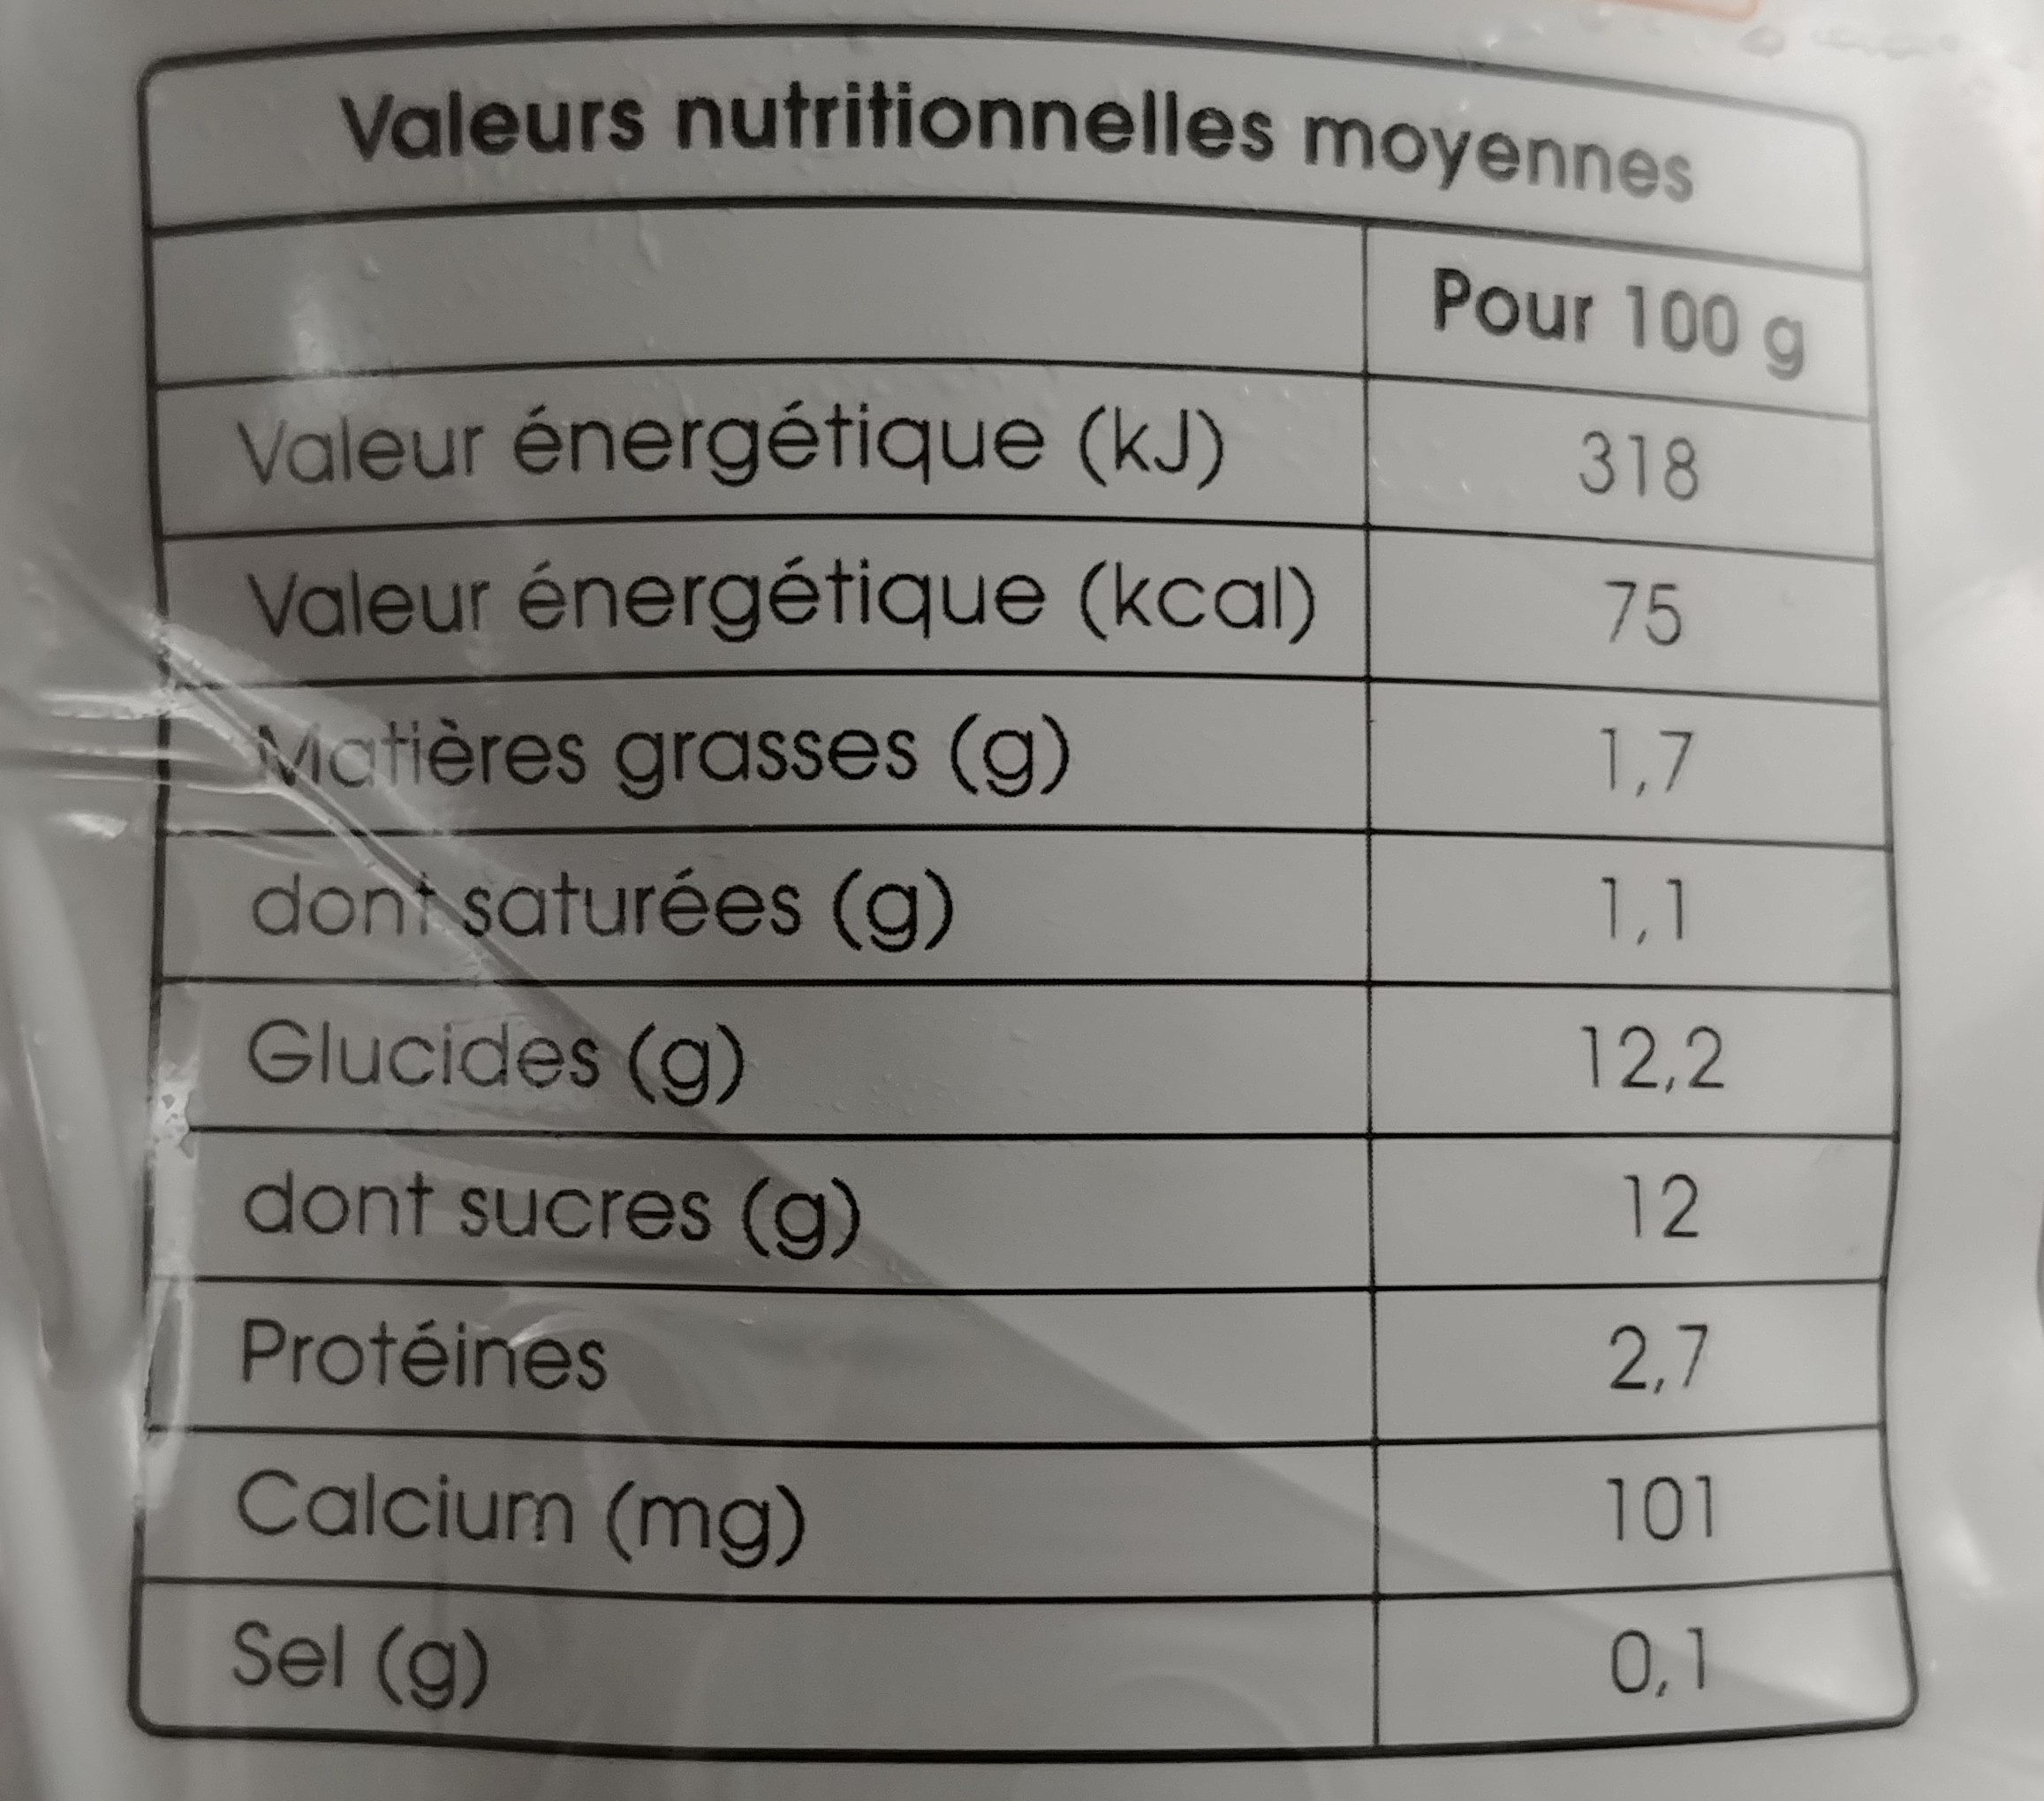 La fontaine à yaourt nectarine & abricot - Nutrition facts - fr